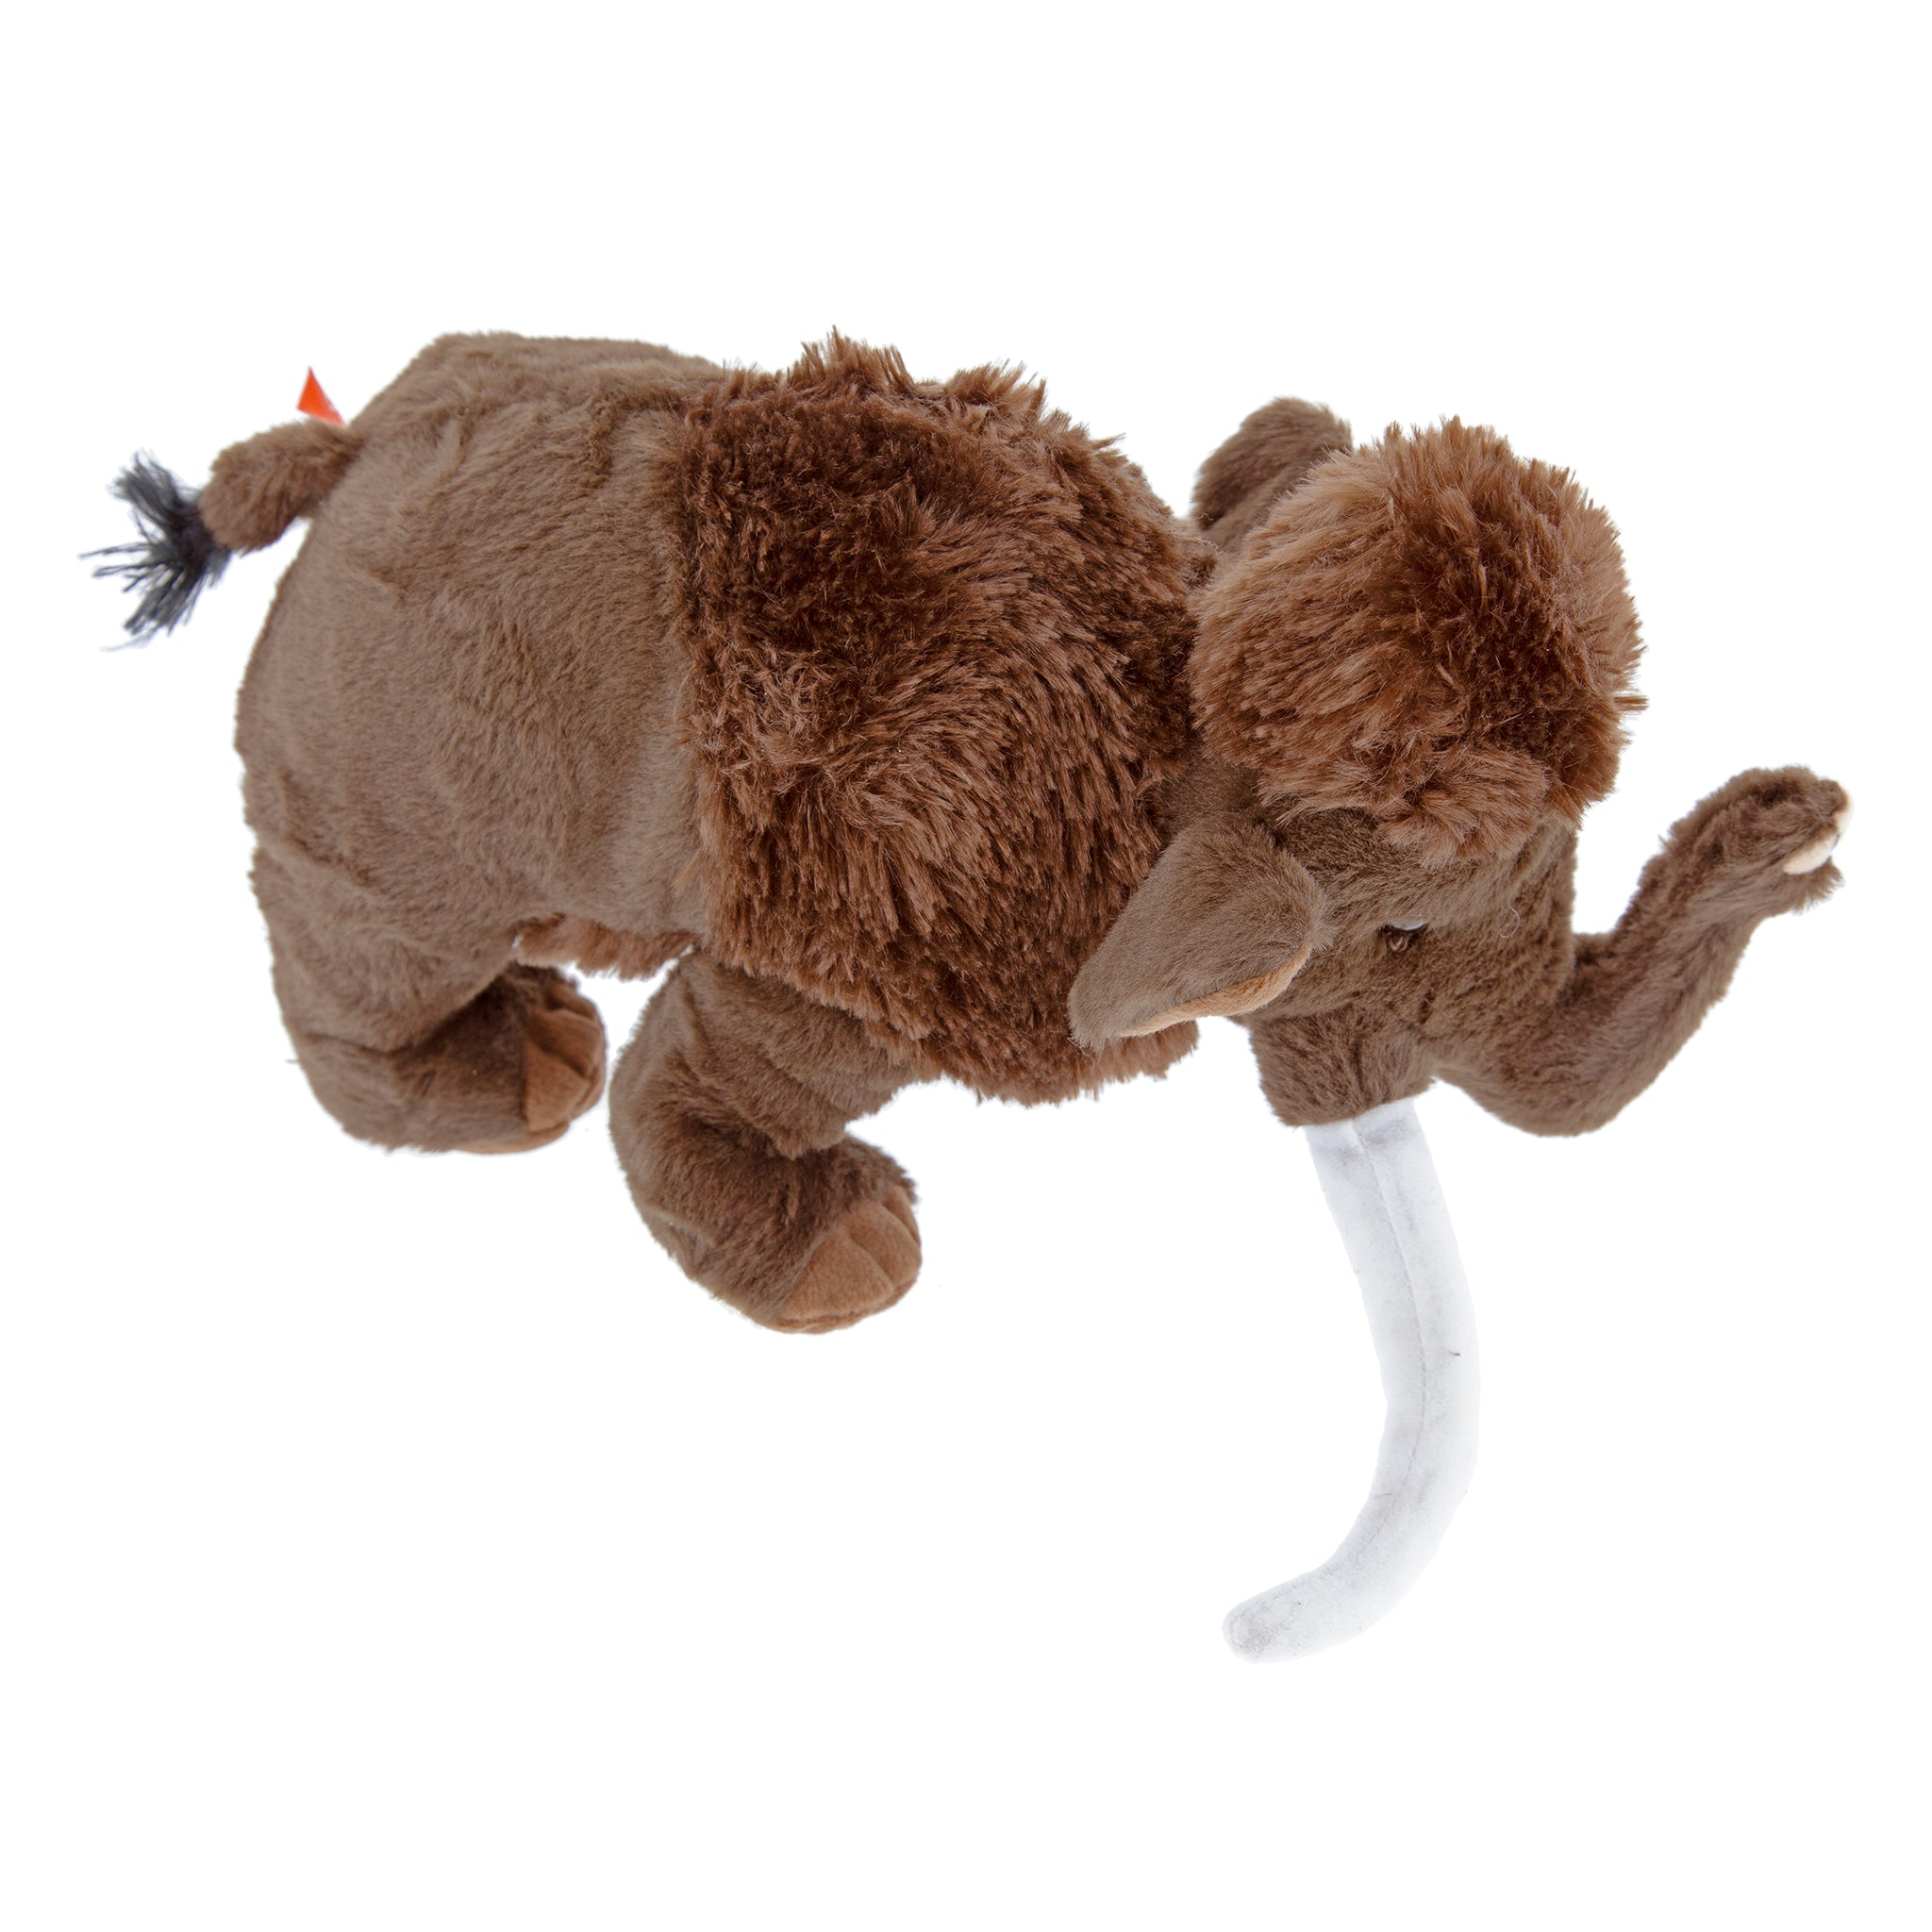 Woolly Mammoth Plush Toy Oakland Museum Of California Store